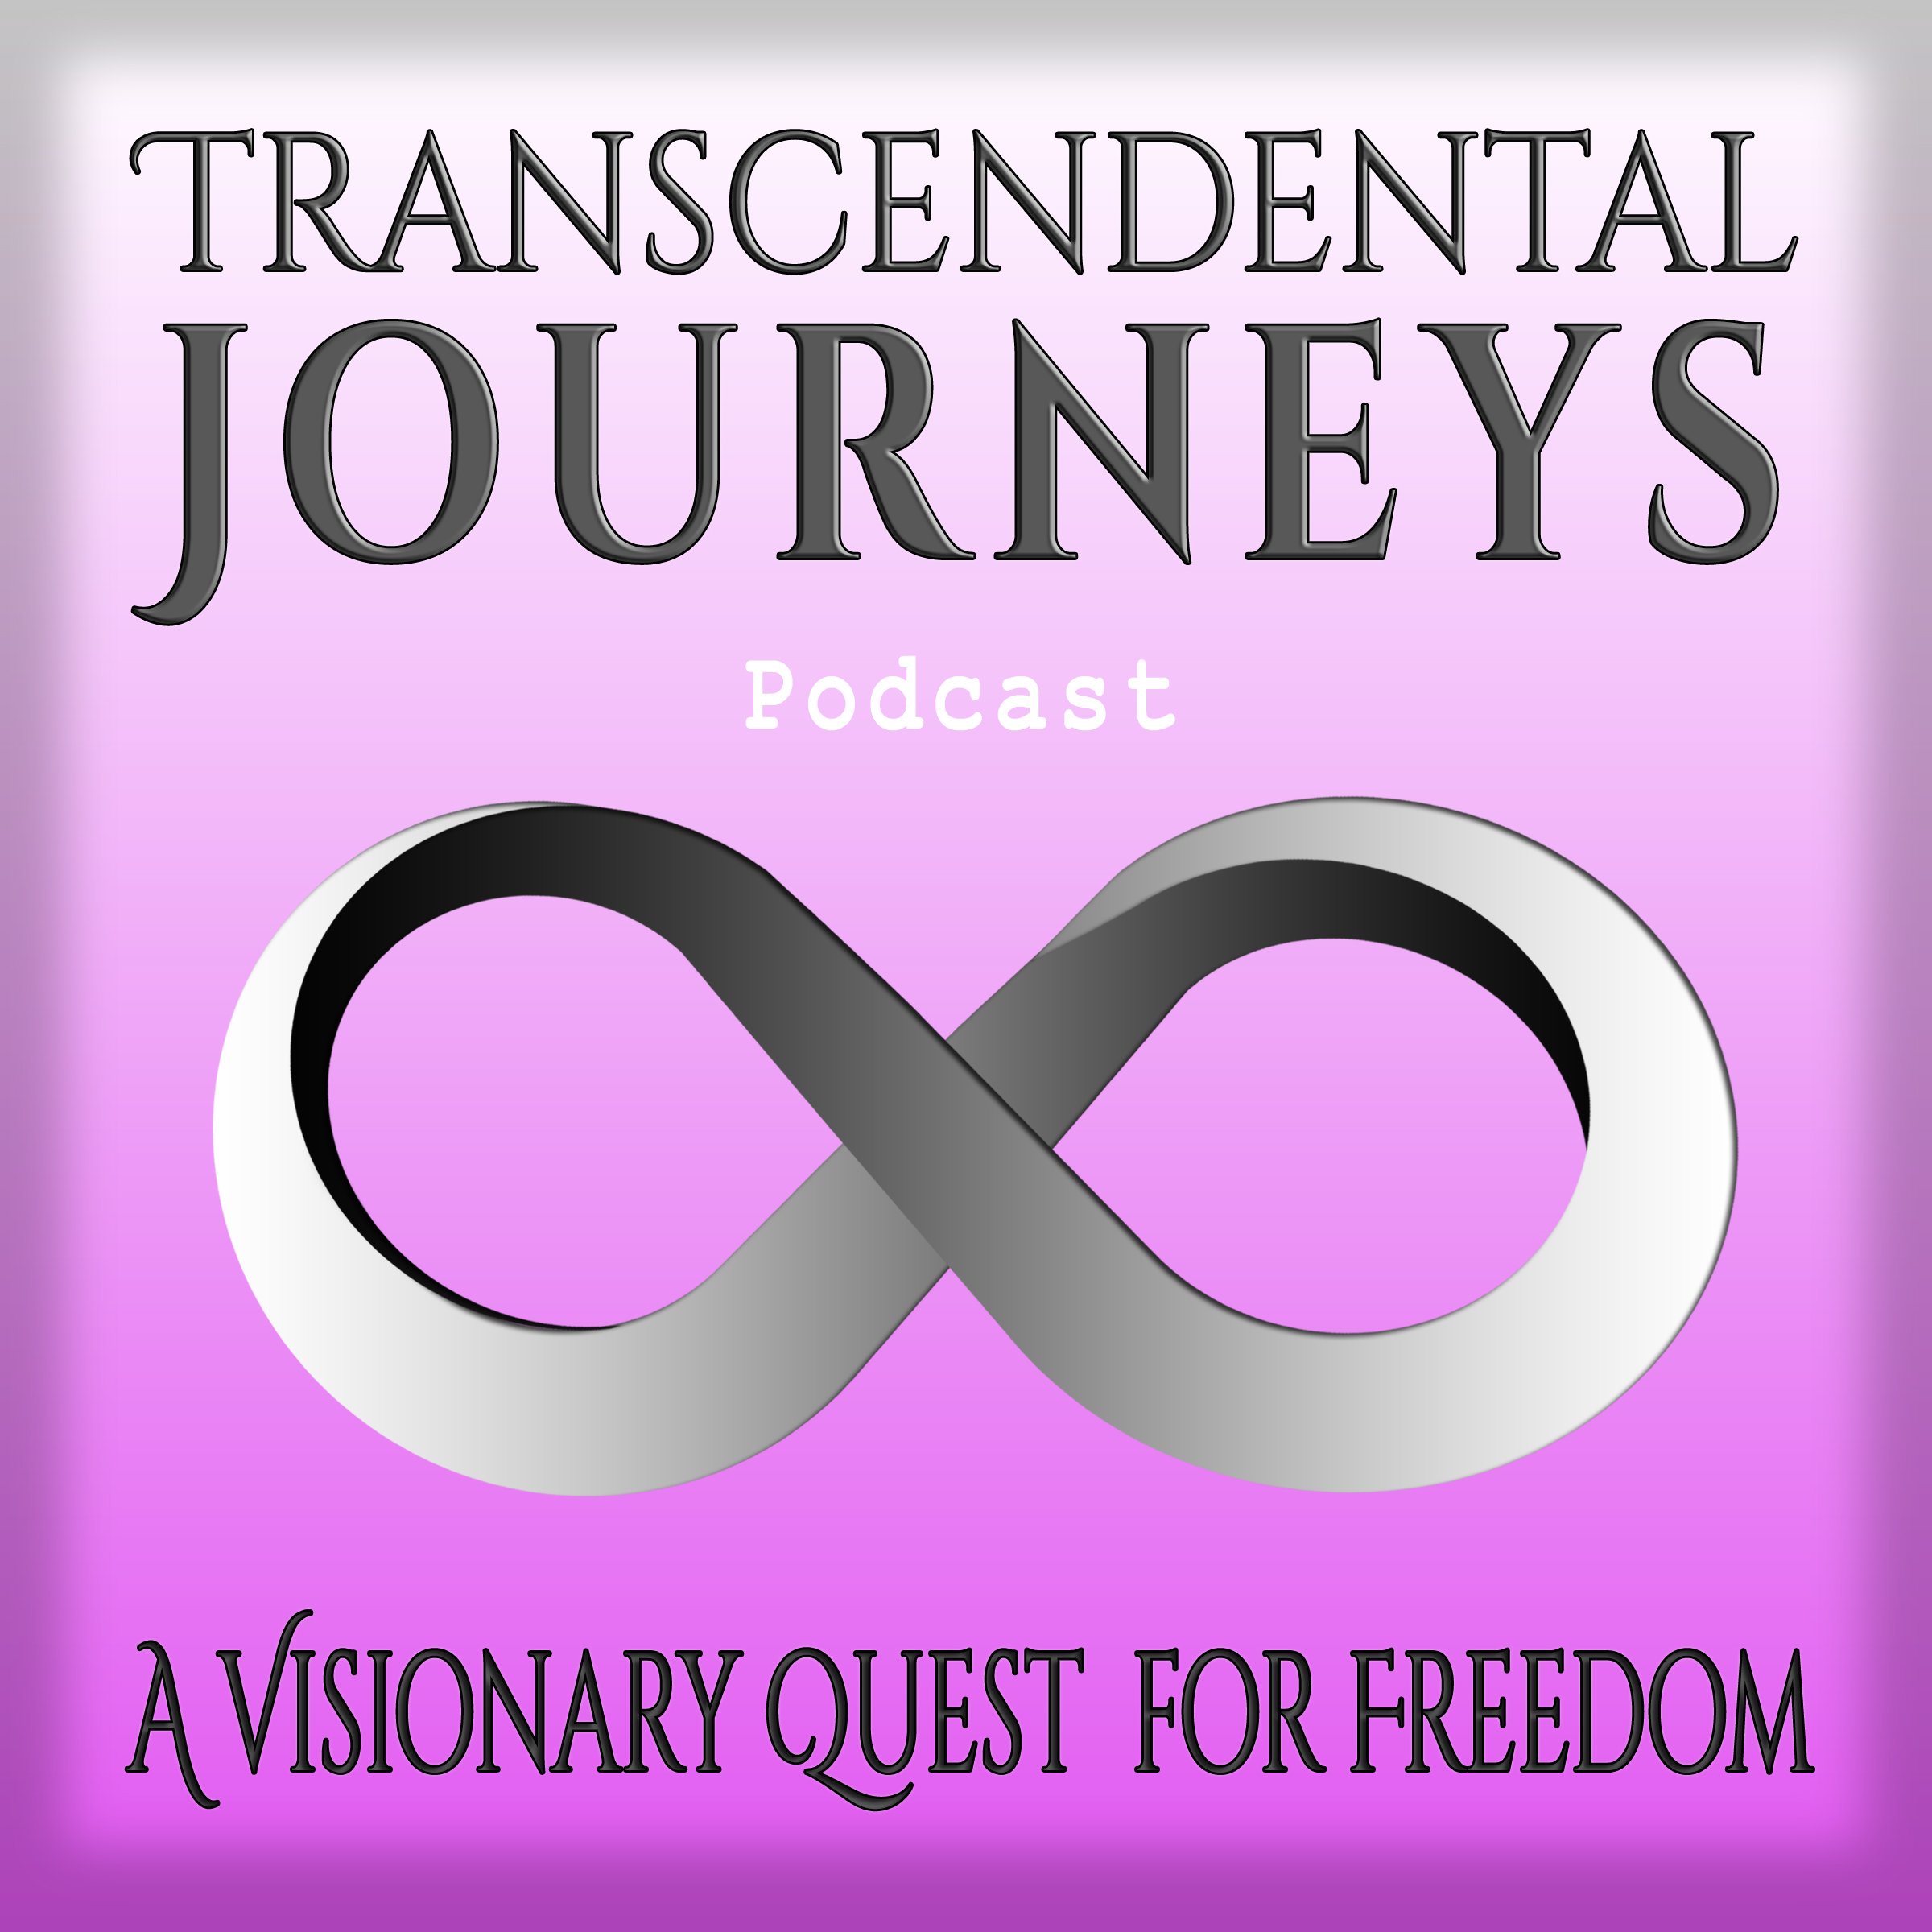 Transcendental Journeys Podcast